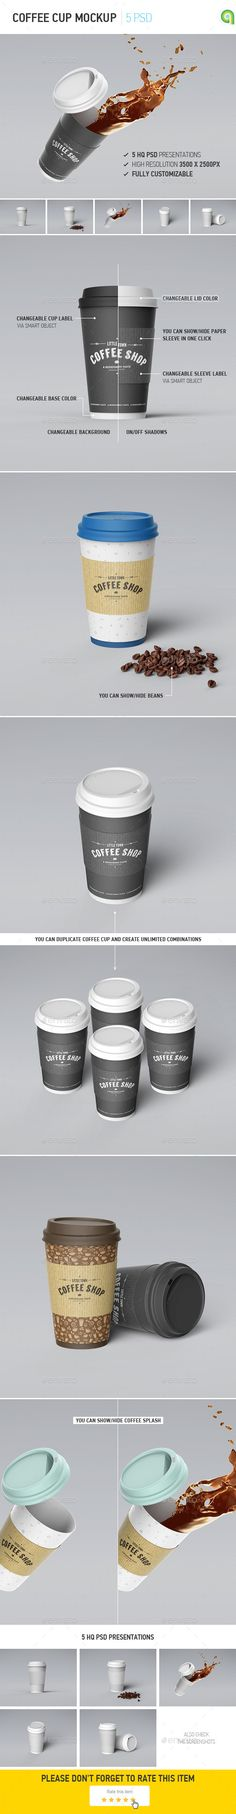 Buy Coffee Cup Mockup by Ayashi on GraphicRiver. You can show/hide paper sleeve in one click; Coffee Beans, Coffee Cups, Tea Cups, Drink Coffee, Coffee Coffee, Beverage Packaging, Coffee Packaging, Cafe Branding, Coffee Cup Design